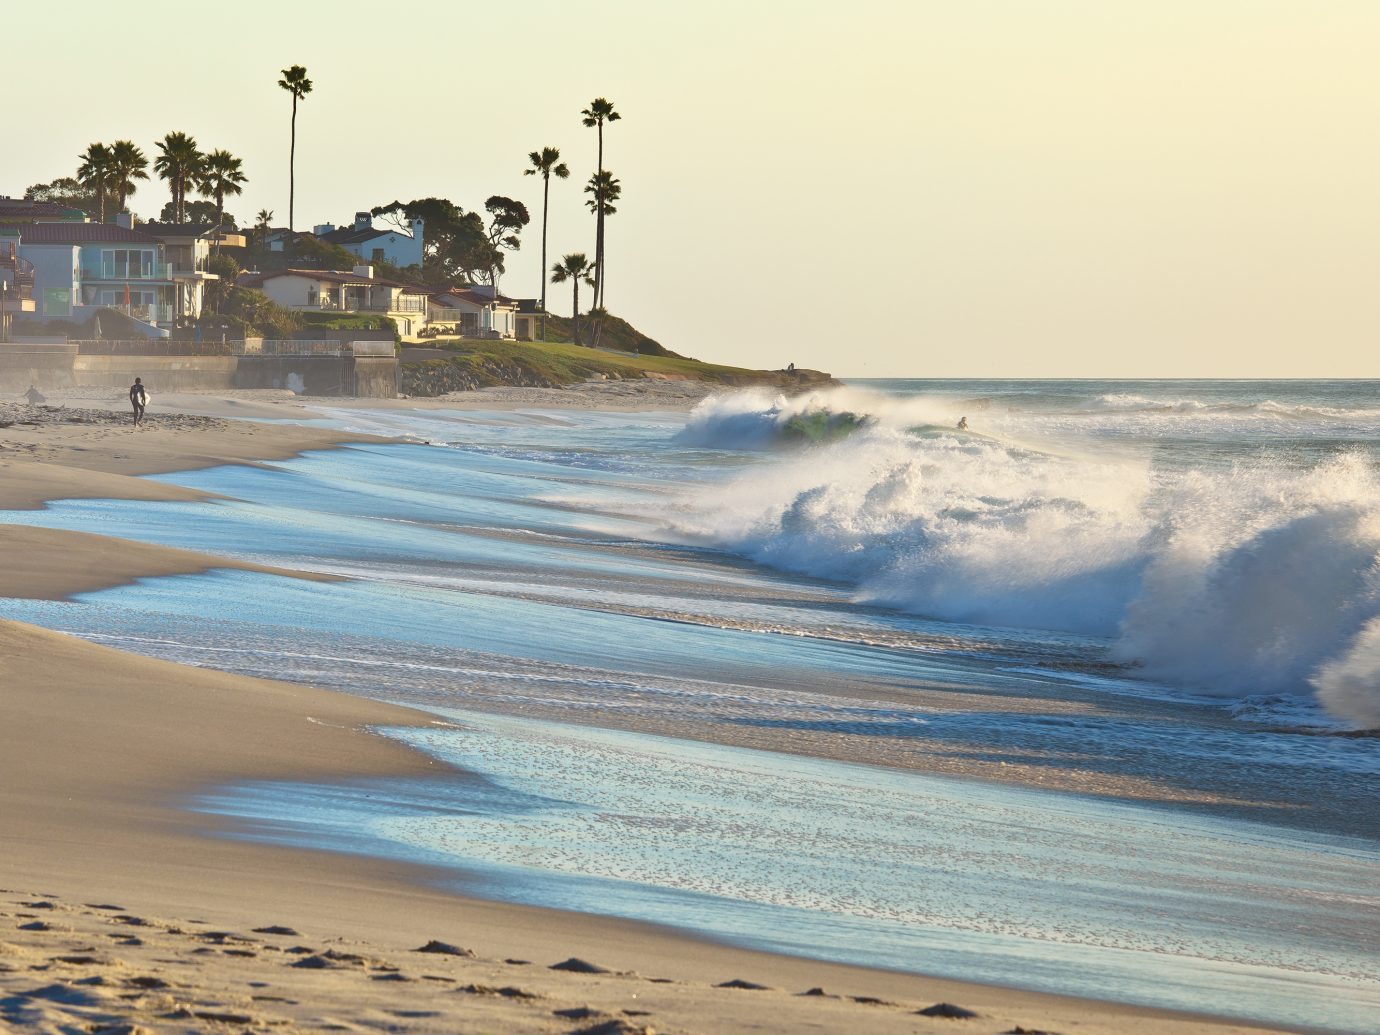 San Diego California beaches are known for their beauty.